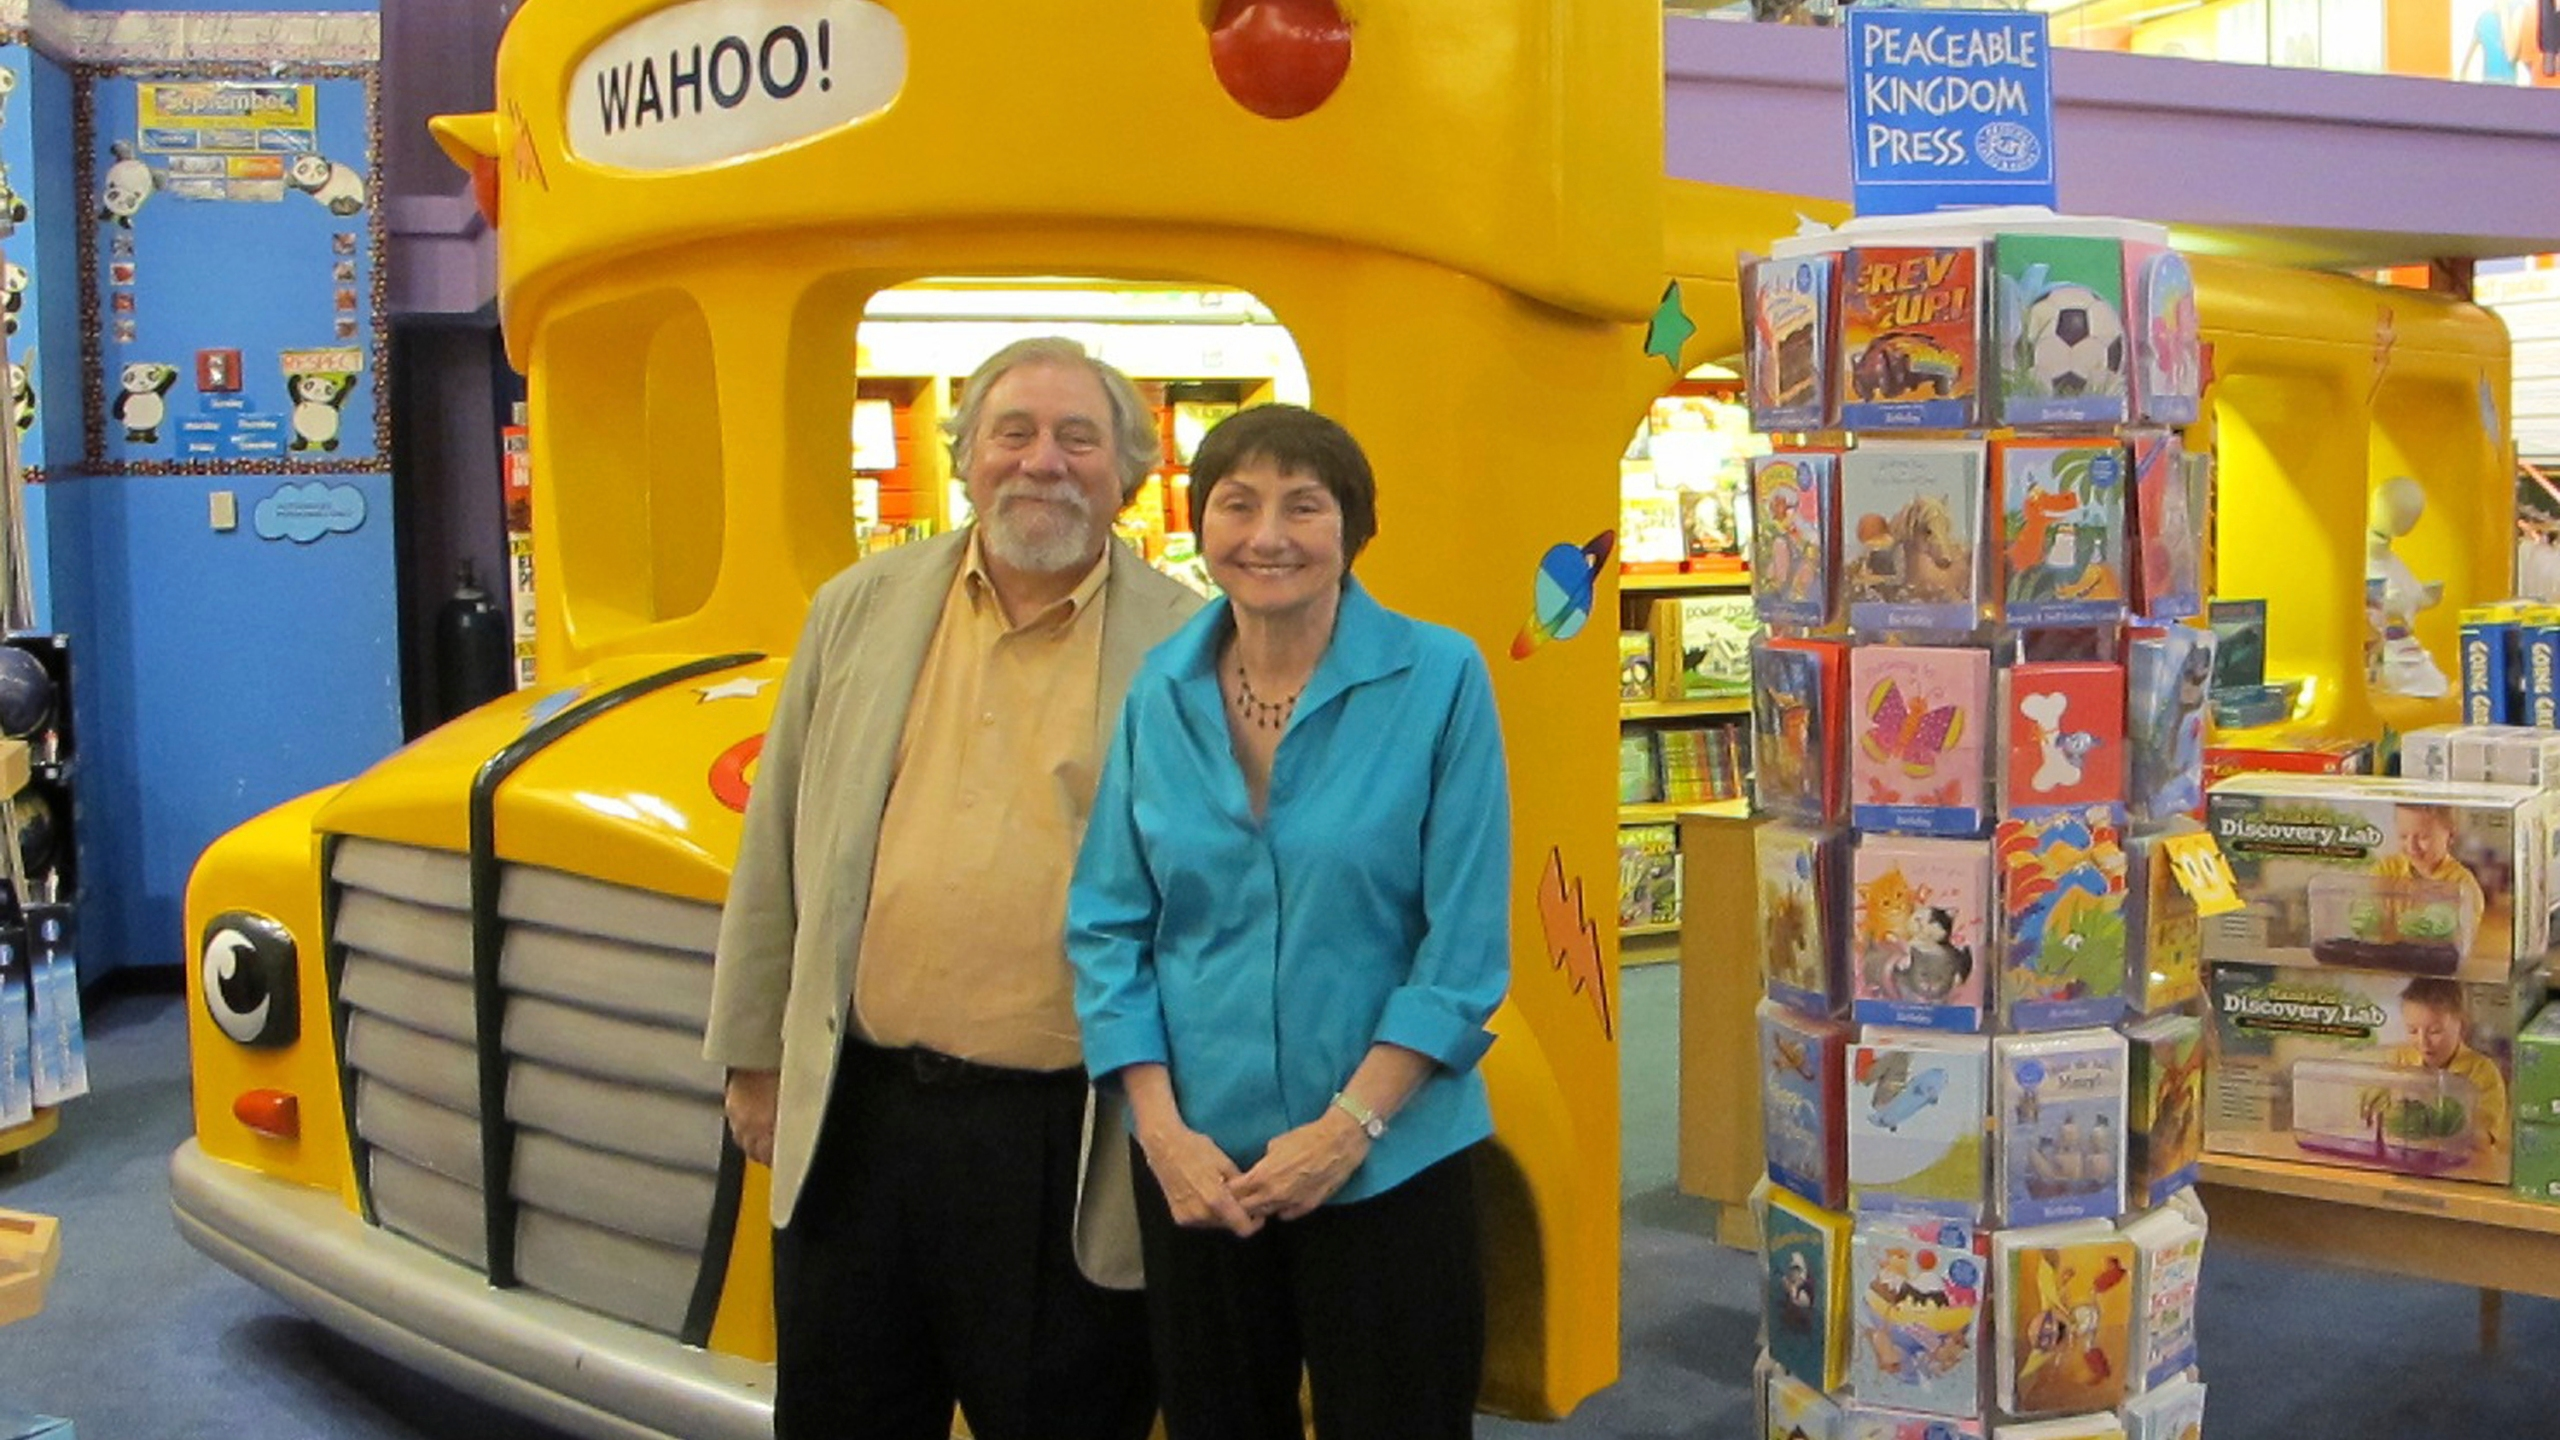 Joanna Cole, right, and illustrator Bruce Degen are seen in this handout photo provided by Scholastic. (Annabelle Helms/Scholastic via AP)